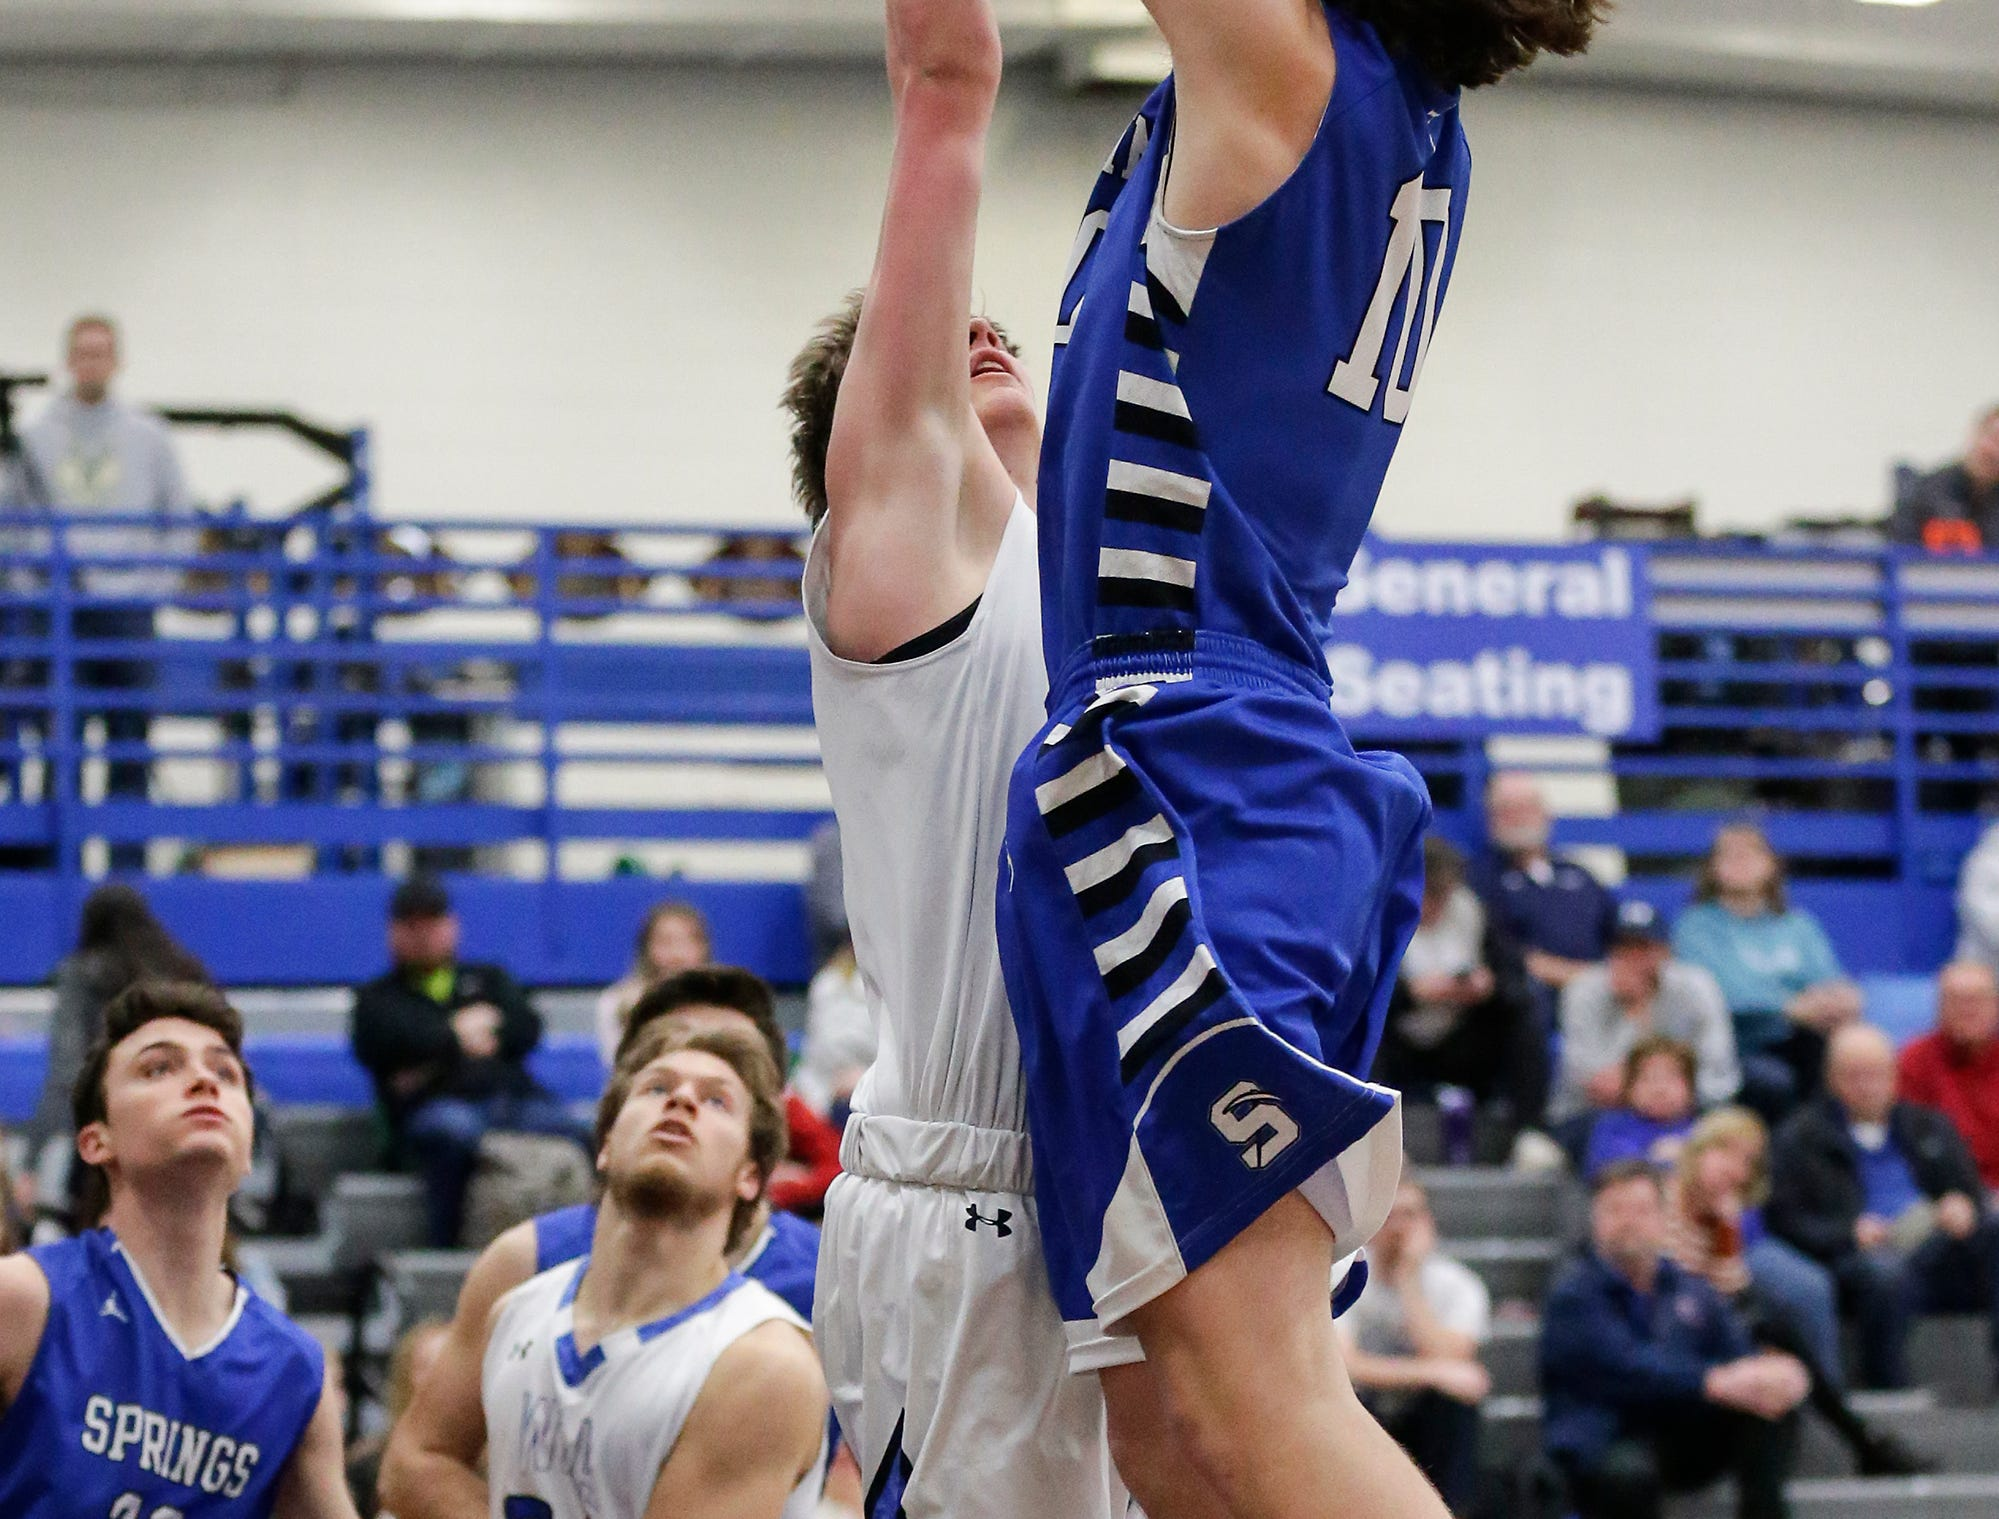 St Mary's Springs Academy boys basketball's Cade Christensen (10) makes this basket over  Winnebago Lutheran Academy's Gabe Pruss  during their game Thursday, February 21, 2019 in Fond du Lac, Wisconsin. Winnebago Lutheran Academy won the game 95-86. Doug Raflik/USA TODAY NETWORK-Wisconsin